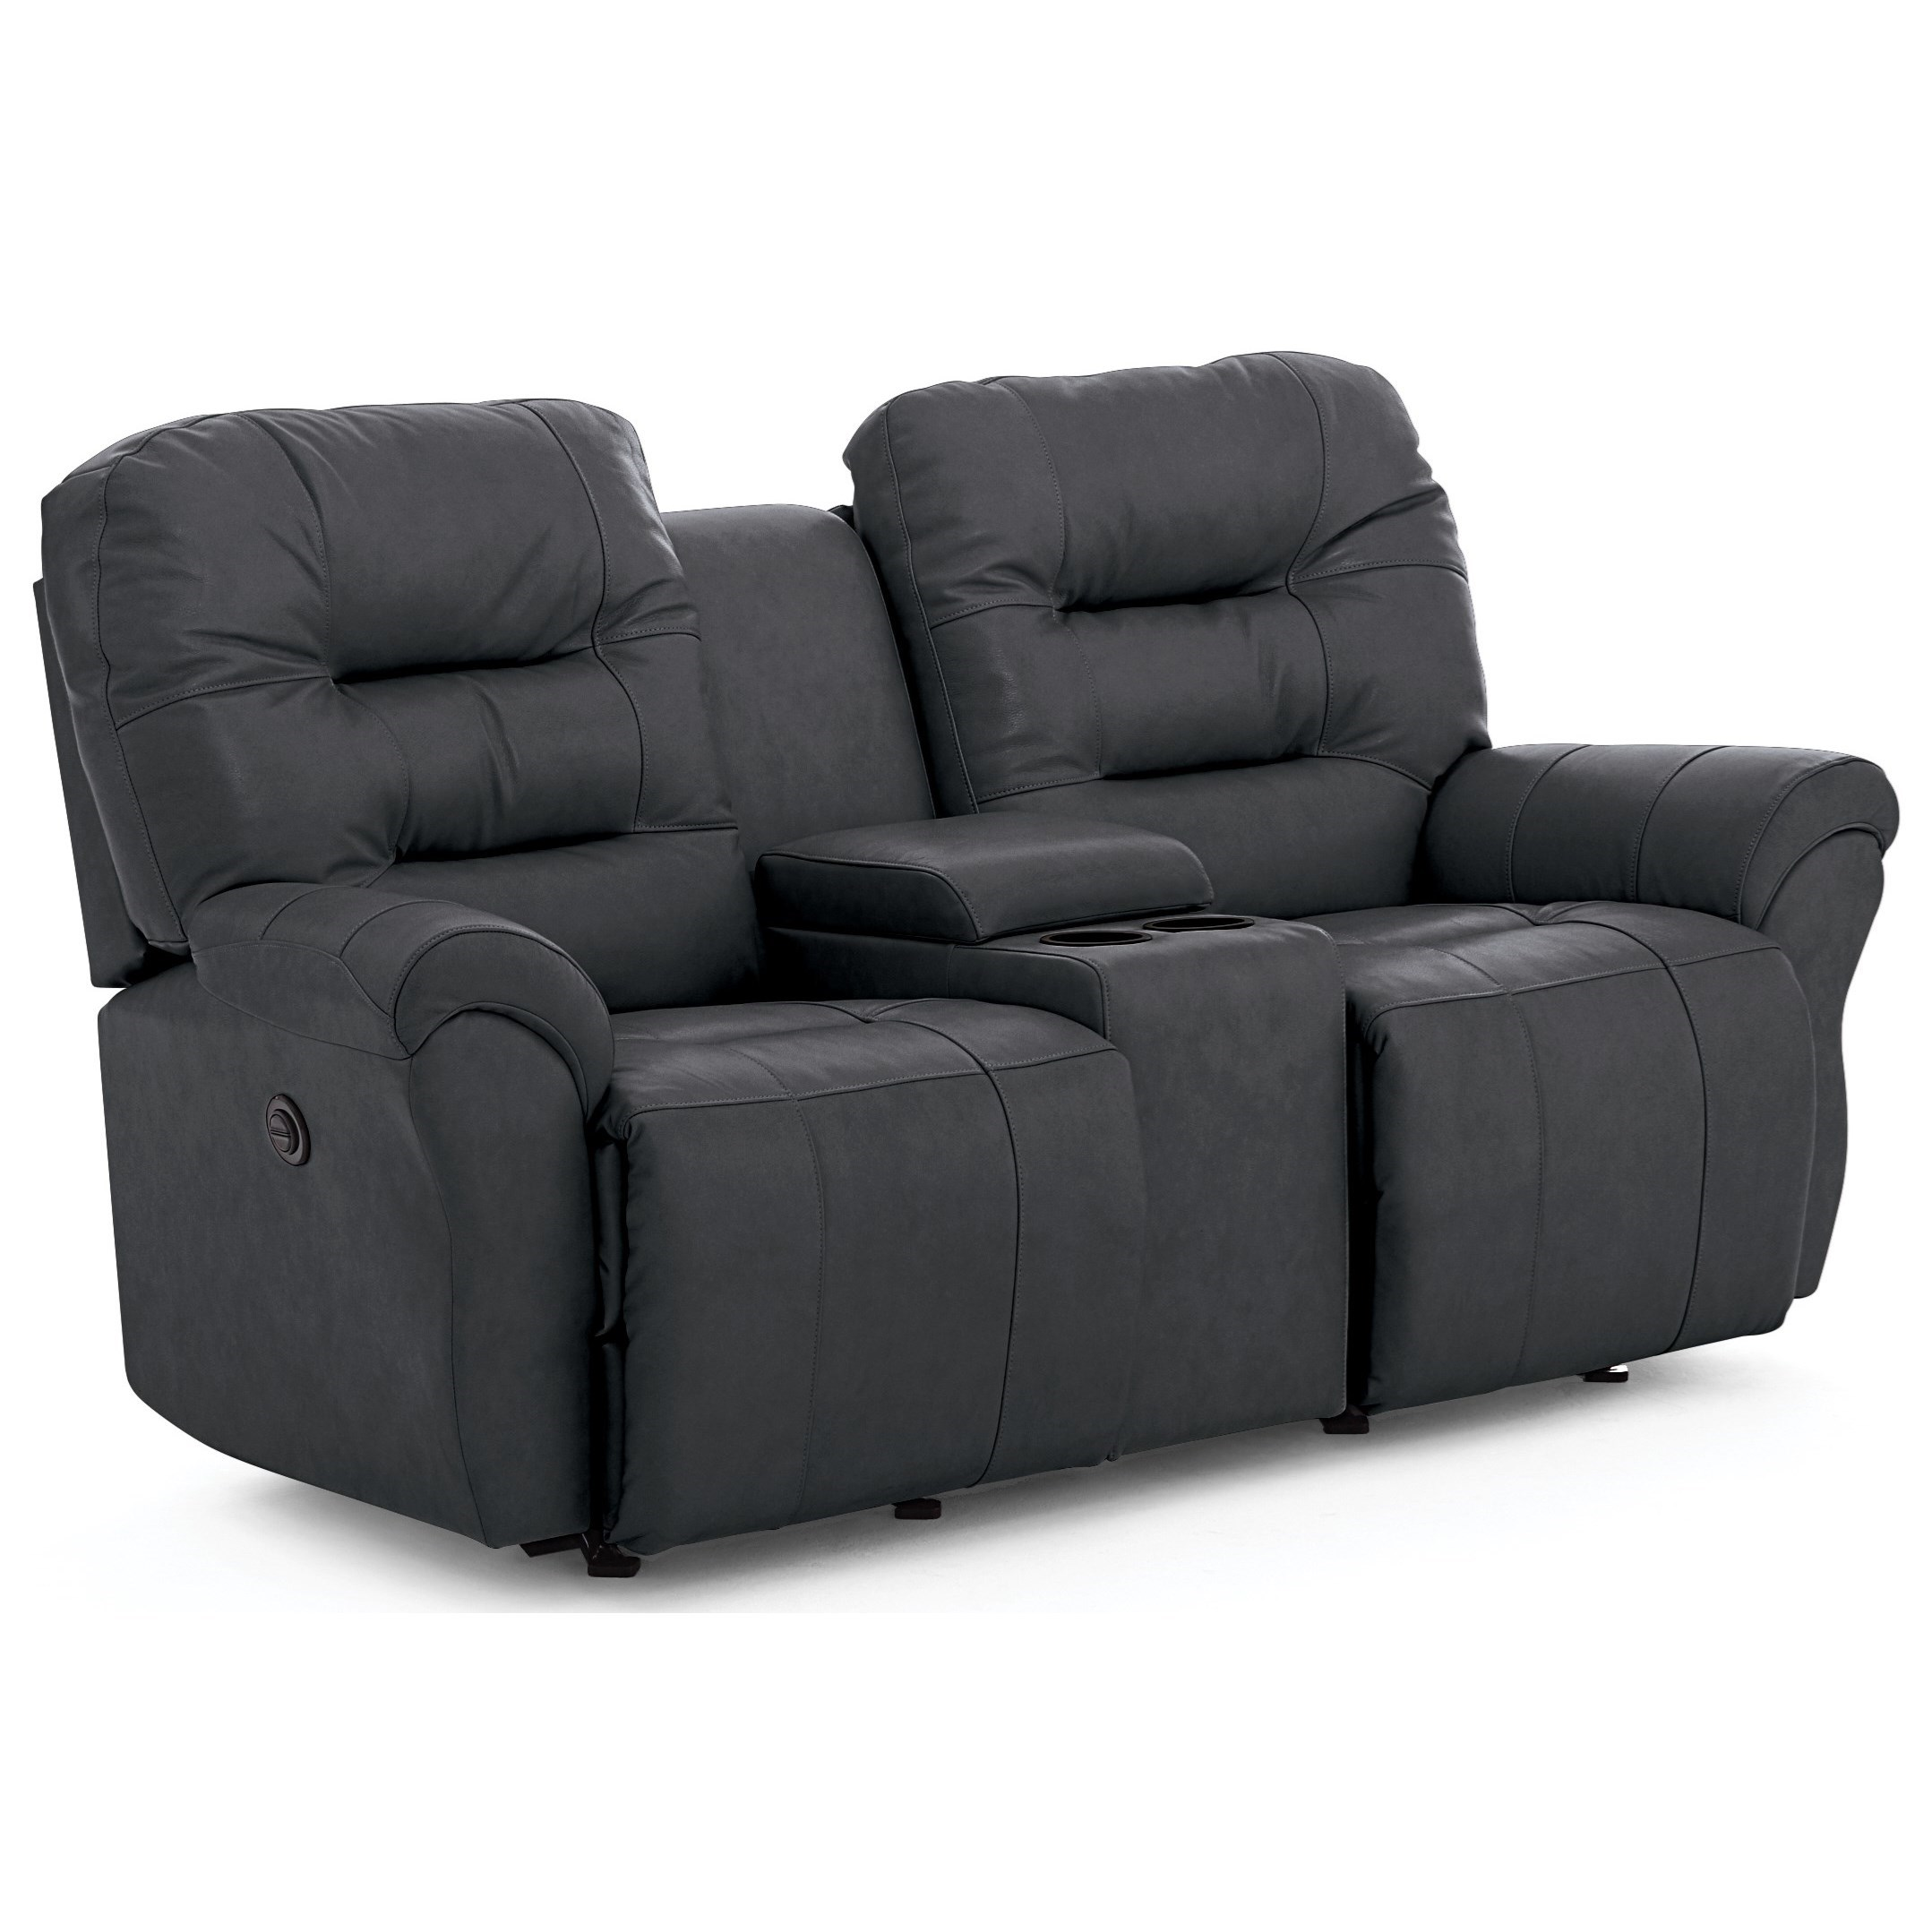 Unity Leather Match Console Reclining Loveseat by Best Home Furnishings at Wilcox Furniture